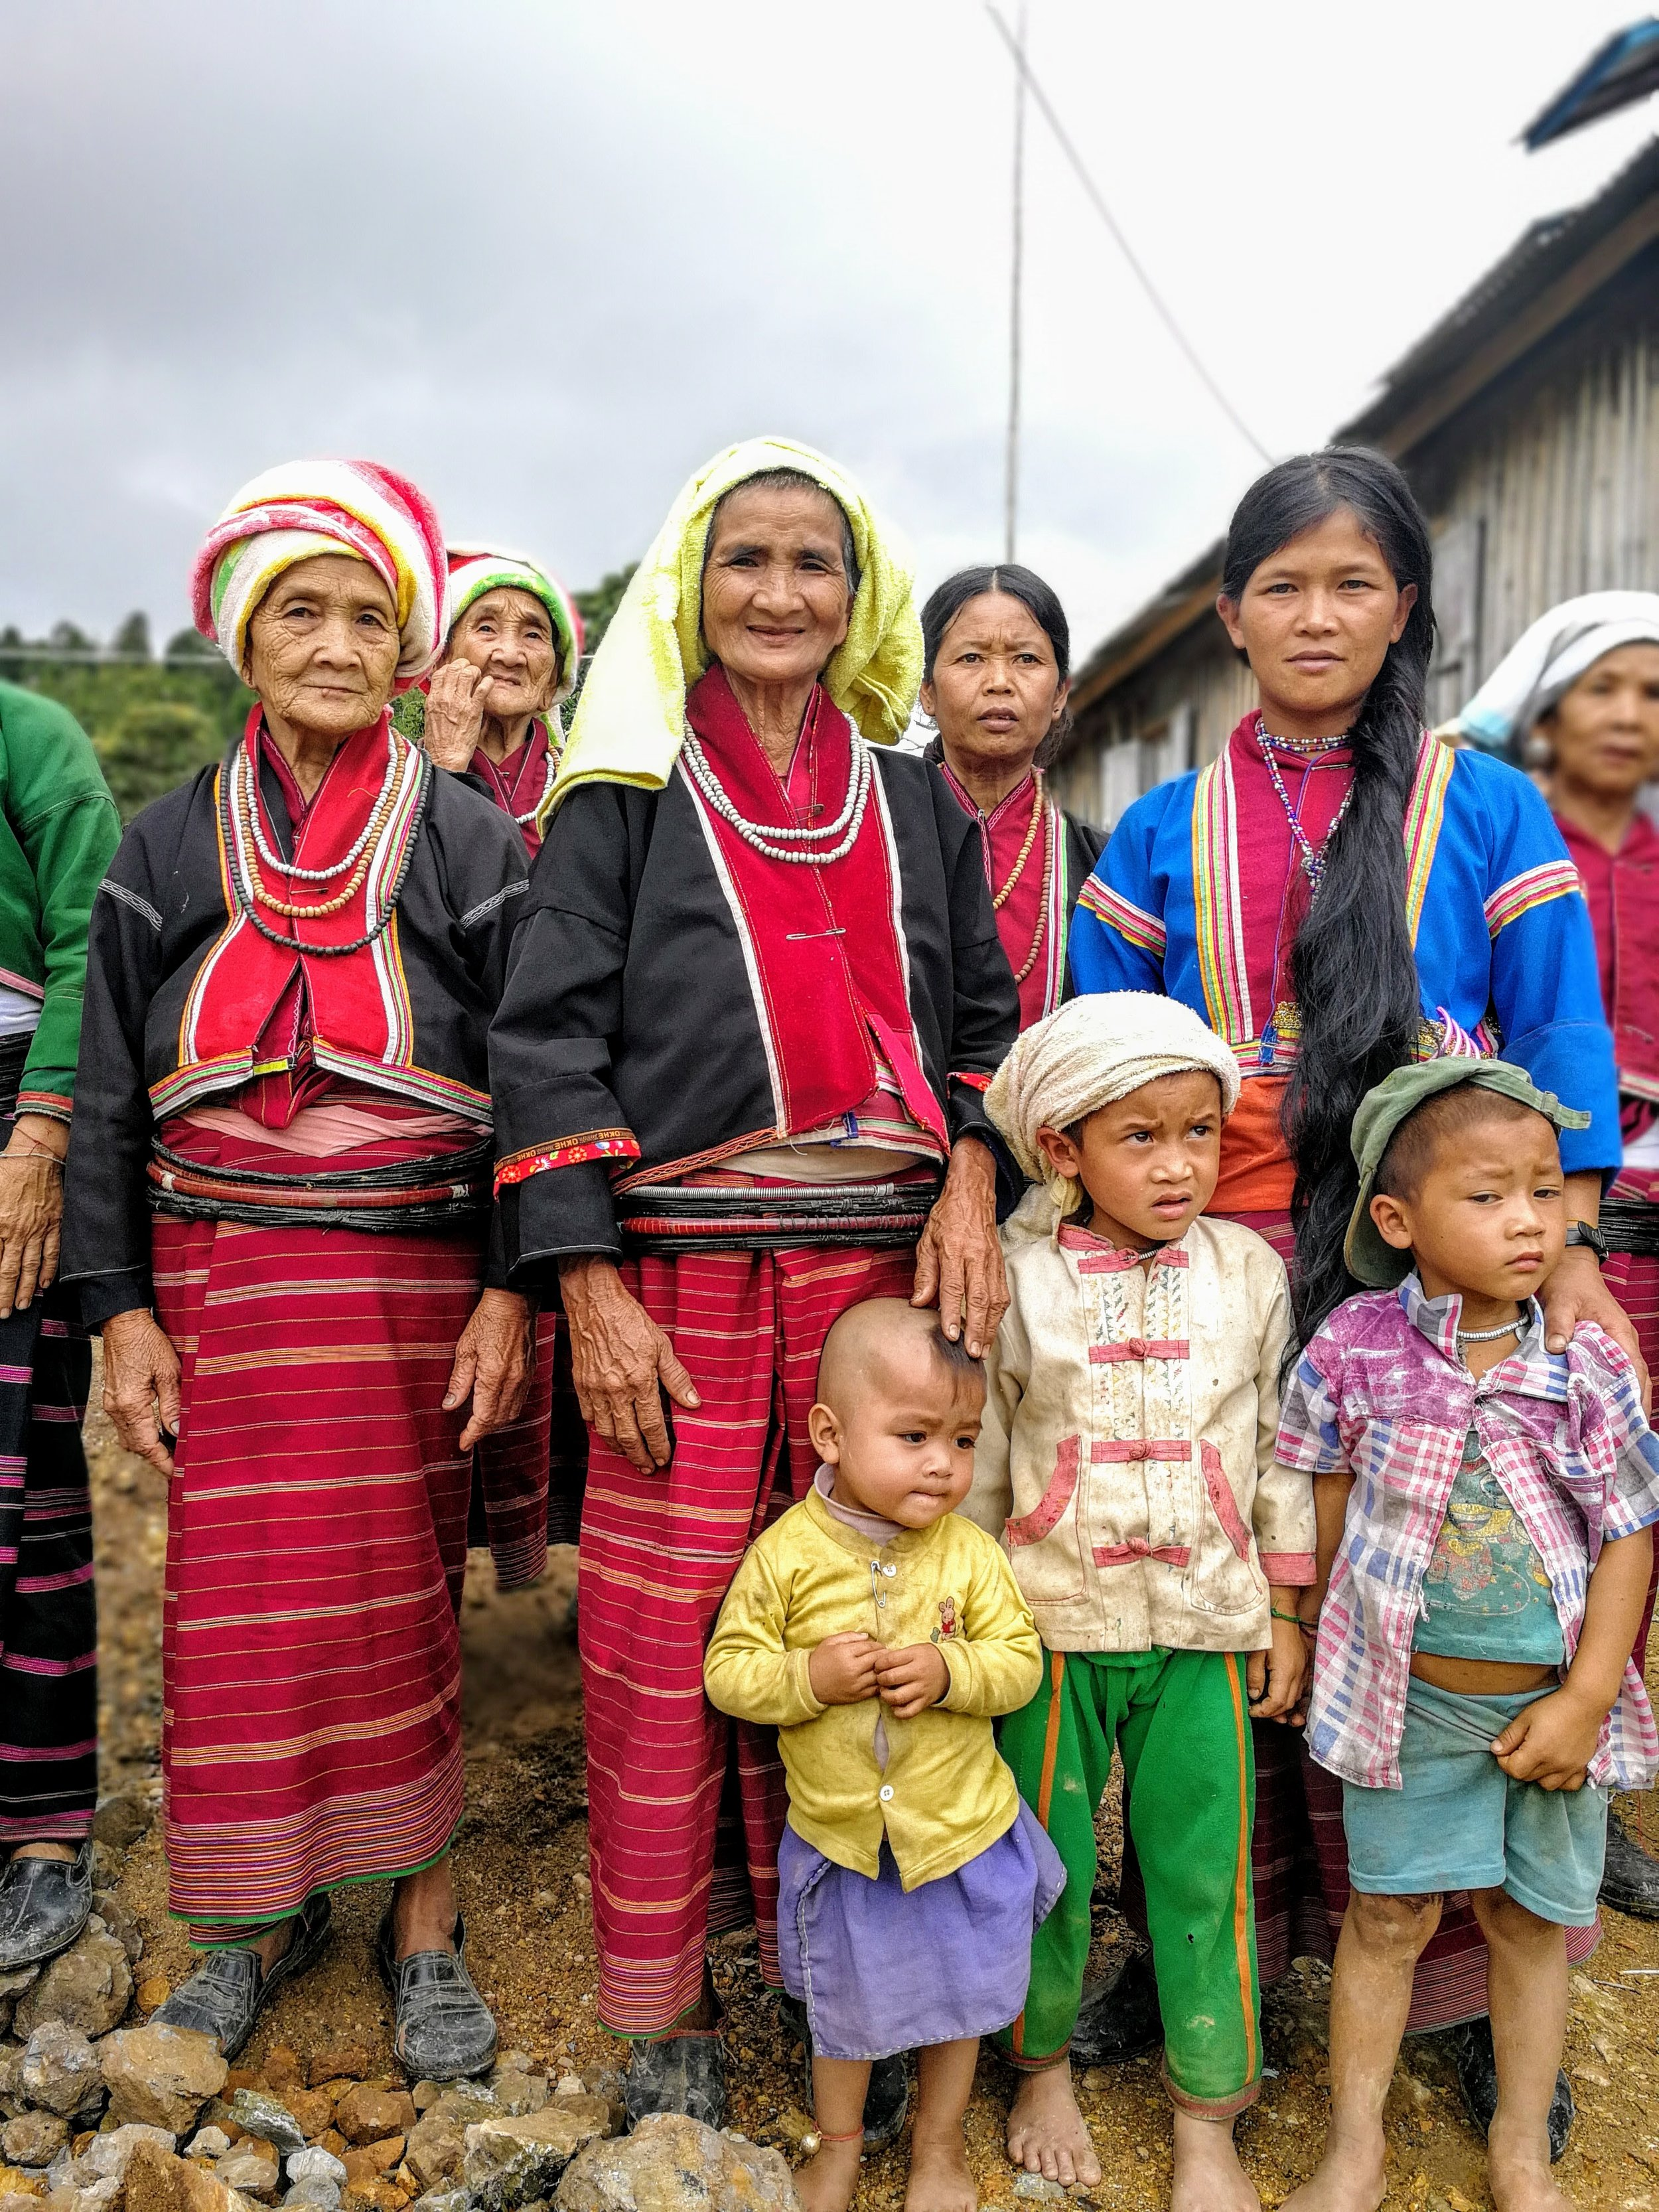 A group of women from the Palaung ethnic group in Northern Shan State. I took this photo in th summer of 2017 while visiting a school Build a School in Burma built in partnership with the community.